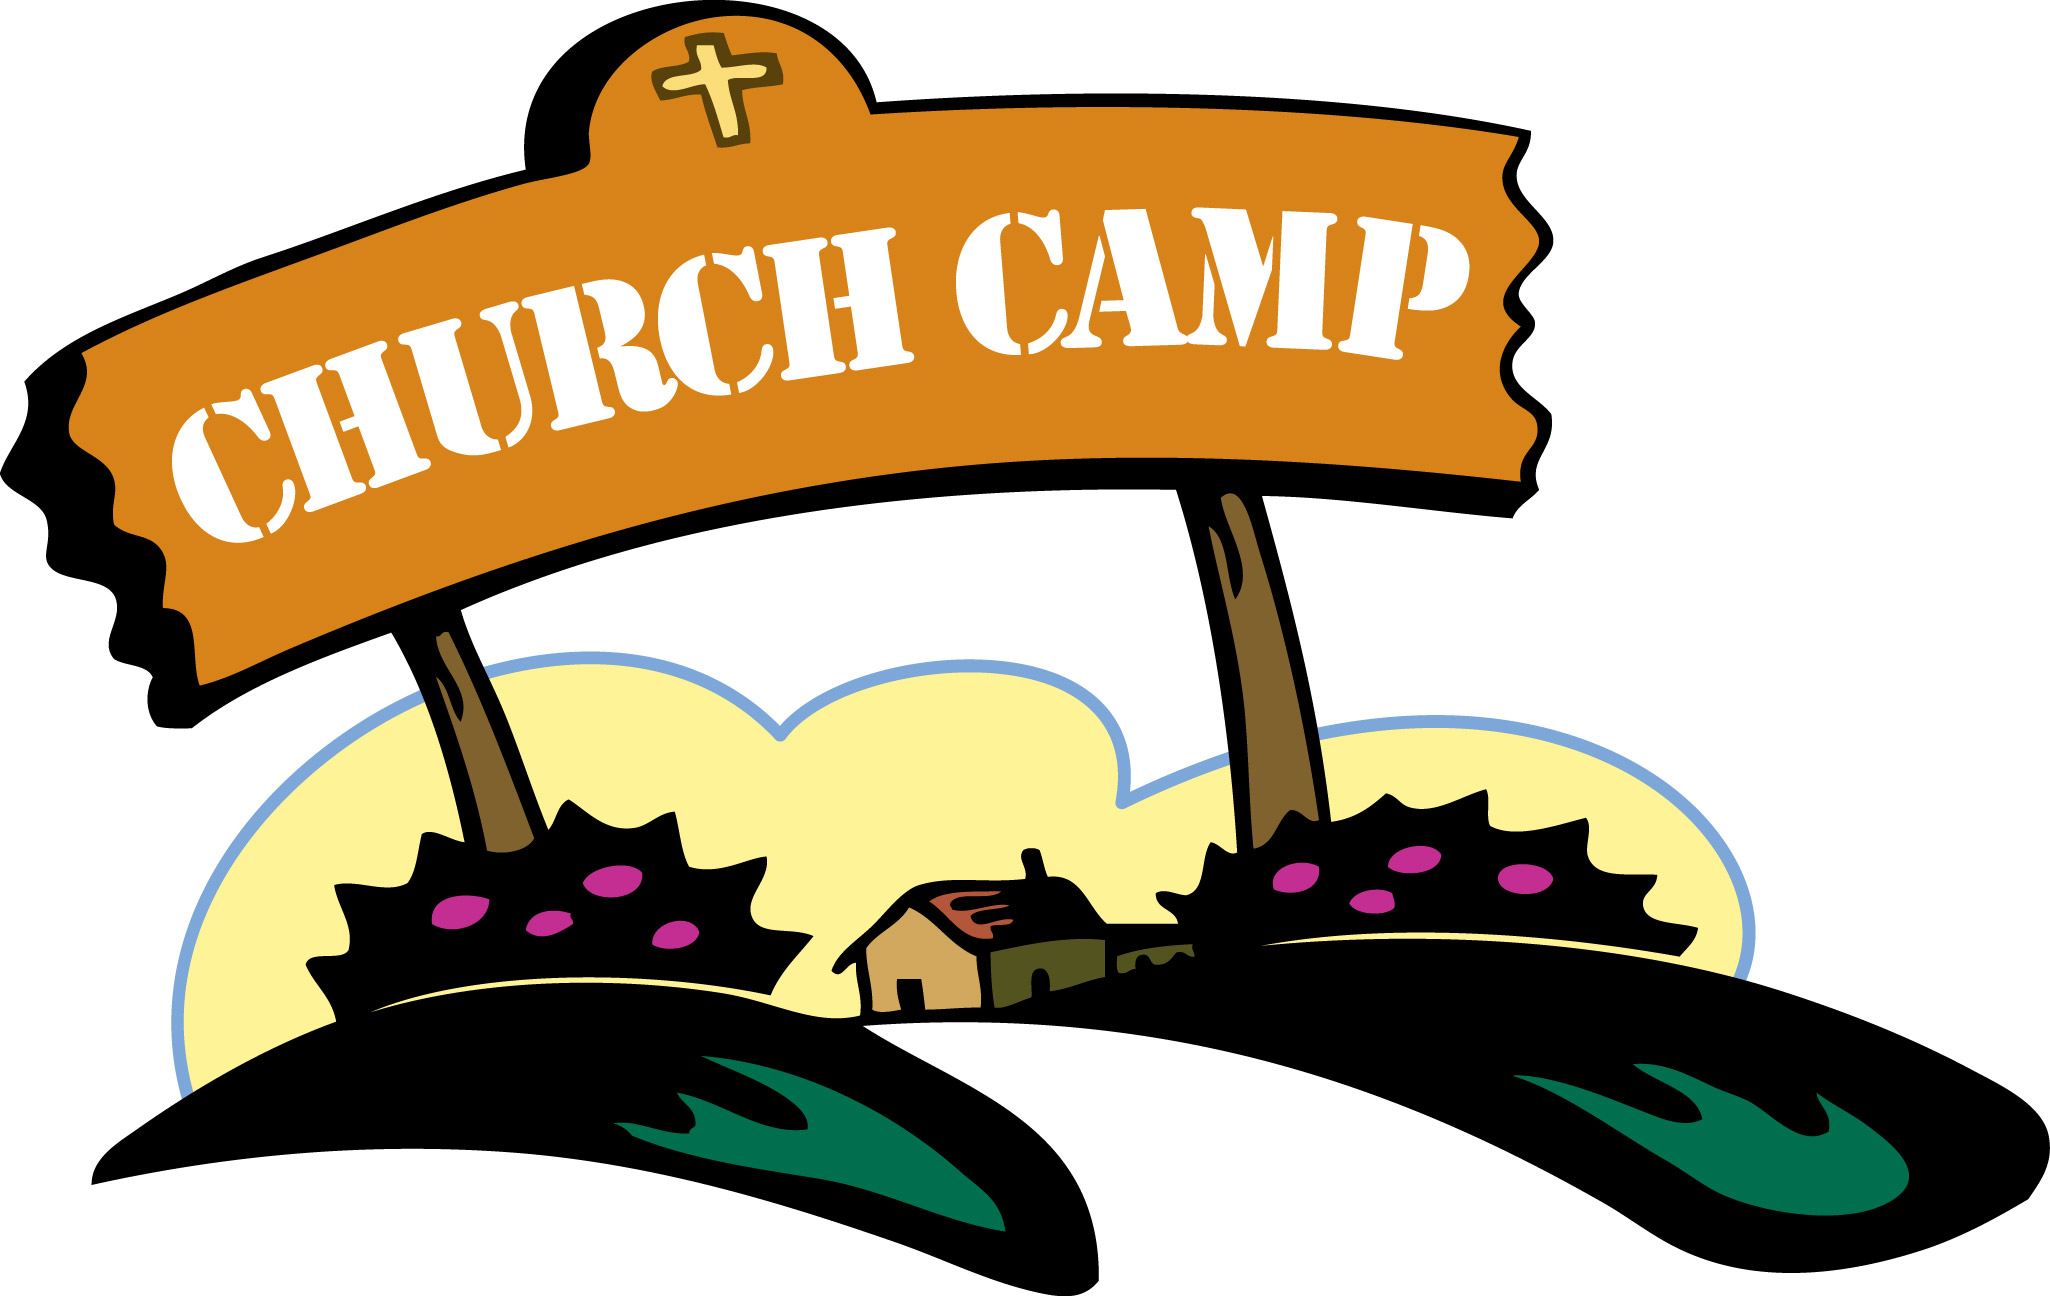 Free clipart for church programs graphic transparent library Family Going To Church Clipart | Free download best Family Going To ... graphic transparent library